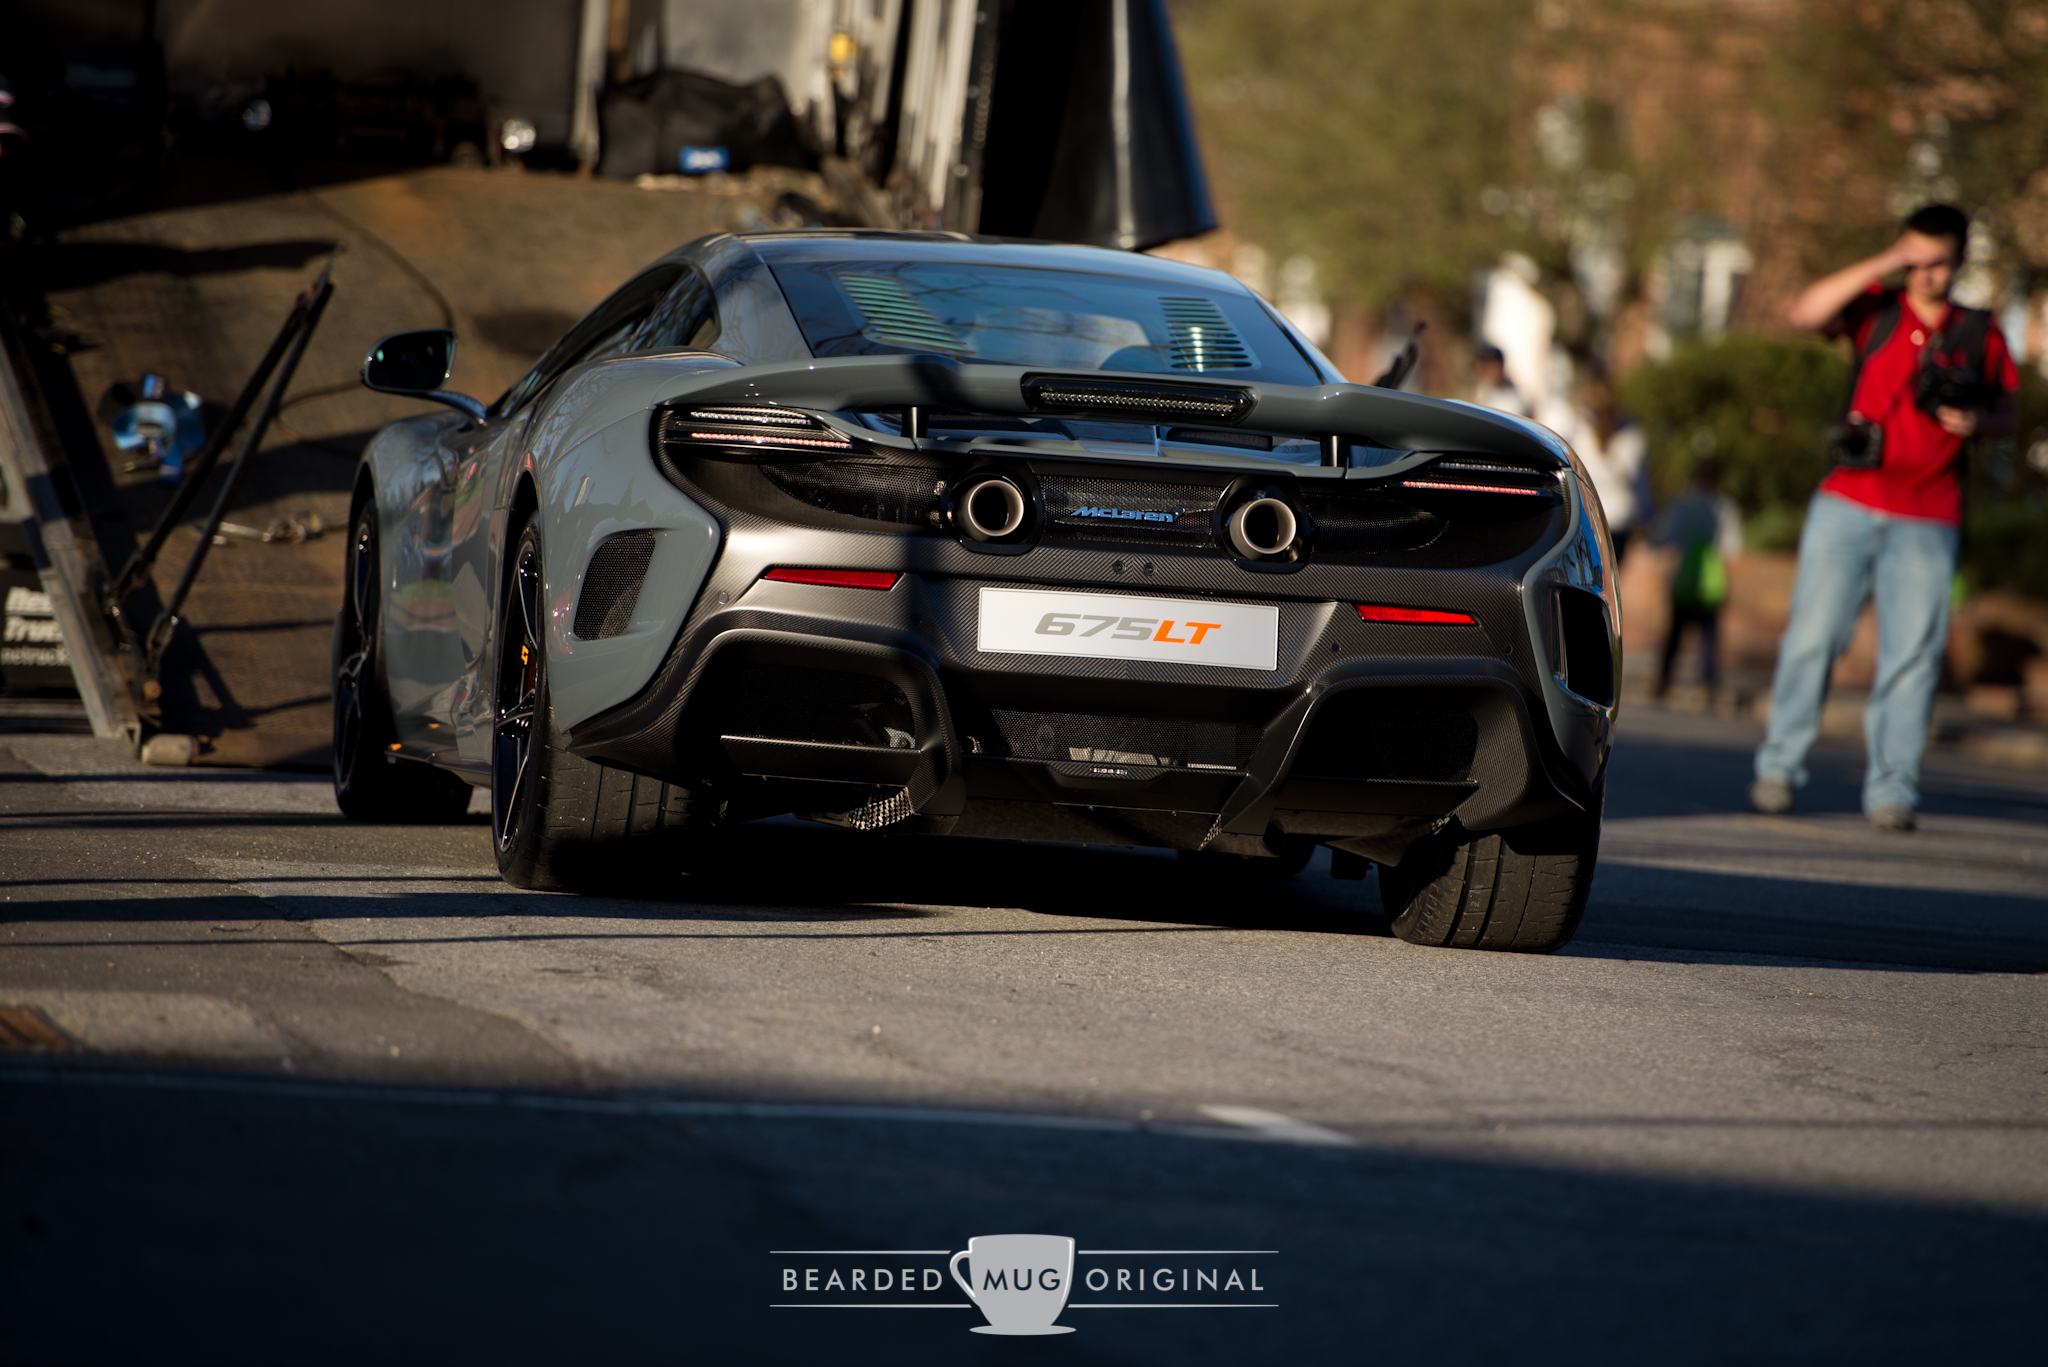 McLaren's limited-production 675 LT is being off-loaded to an awaiting crowd of one eager photographer.